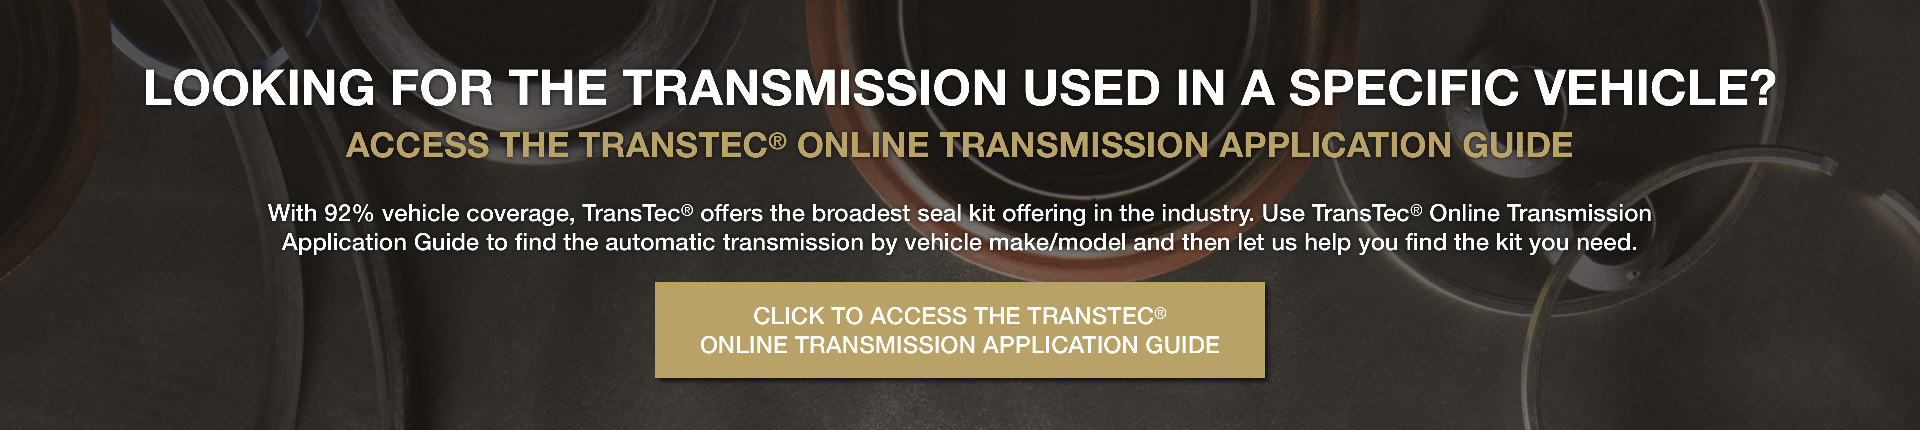 Access TransTec Online Transmission Application Guide